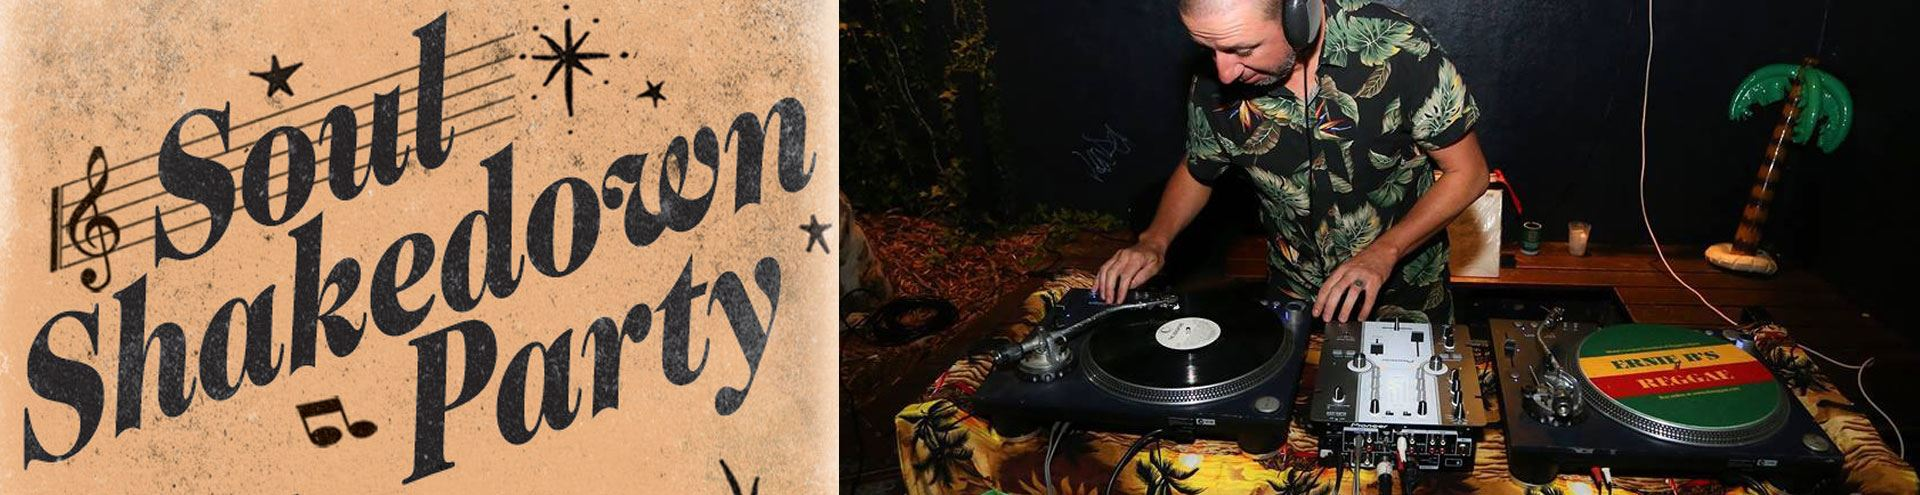 FRIDAY 25 OCTOBER 5-8pm  |   Last Fridays: Soul Shakedown Party